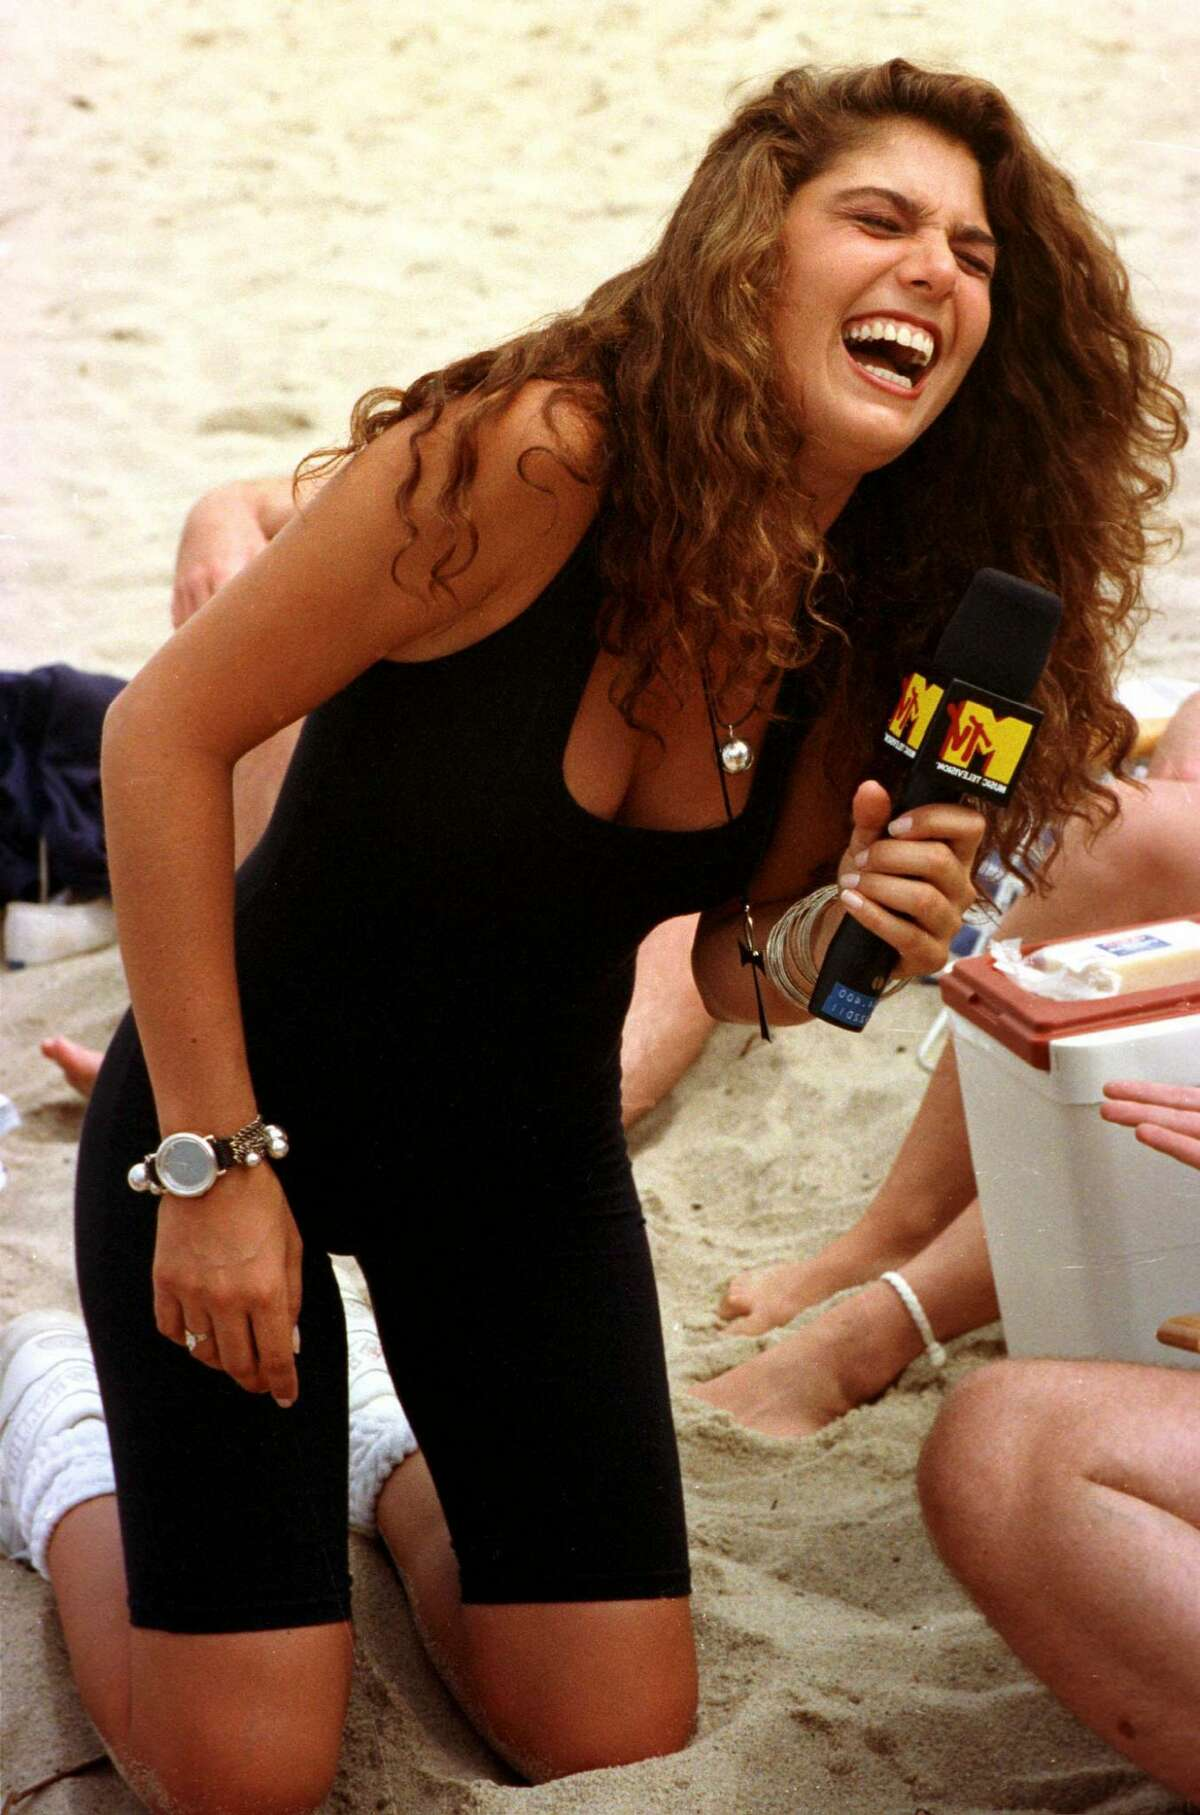 MTV host Daisy Fuentes during the filming of Beach MTV at the Beachcomber in Wellfleet, Massachusetts, 29th July 1990. (Photo by Stephen Rose/Getty Images)